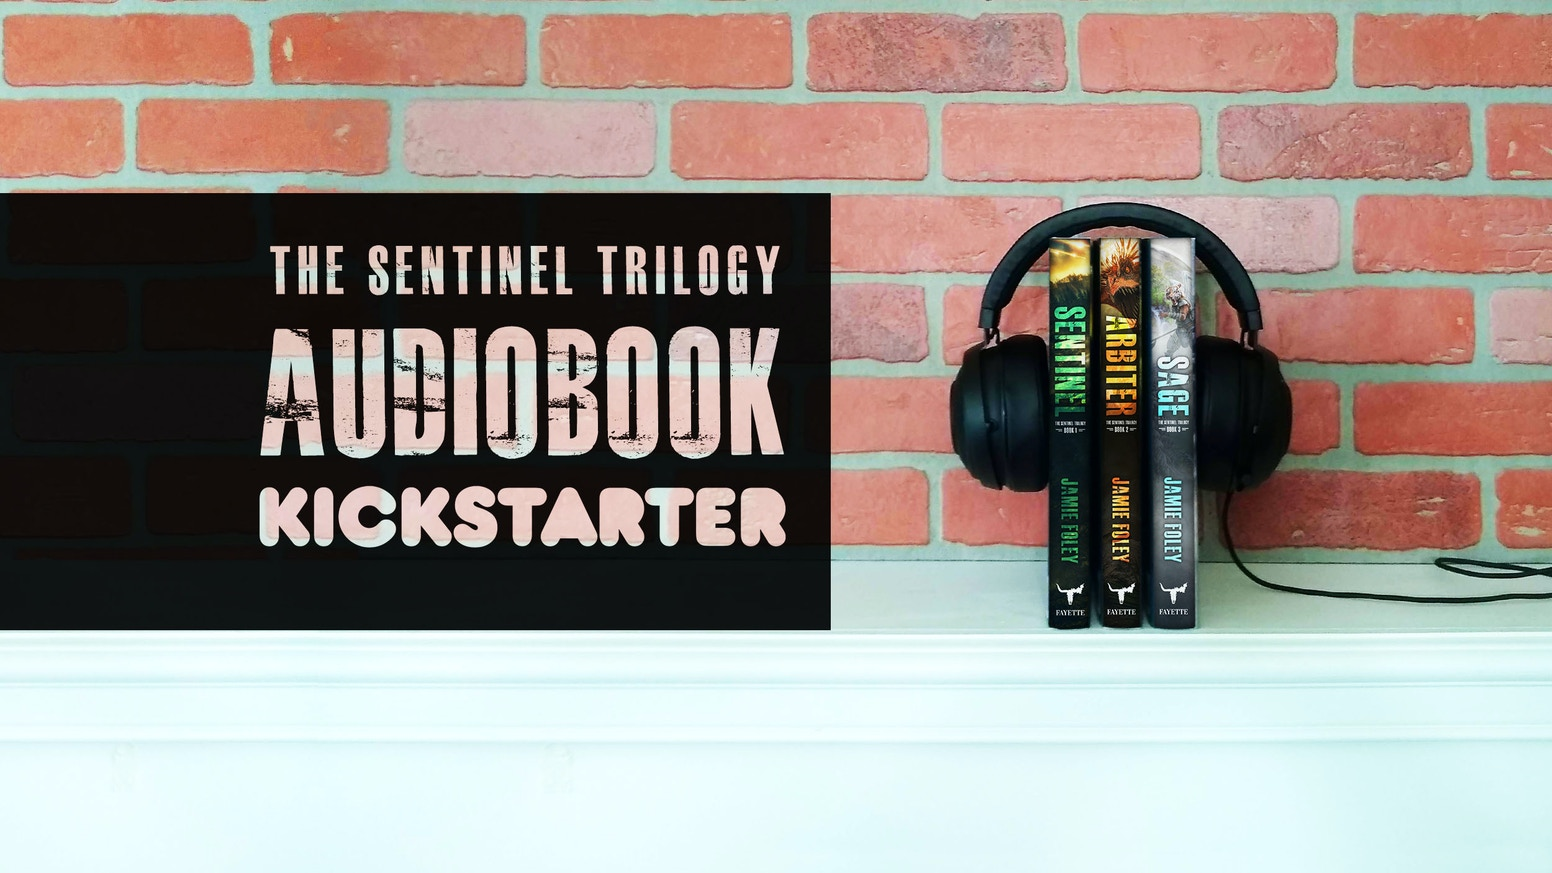 Audiobook fundraising for the first novel in an urban fantasy series, The Sentinel Trilogy.